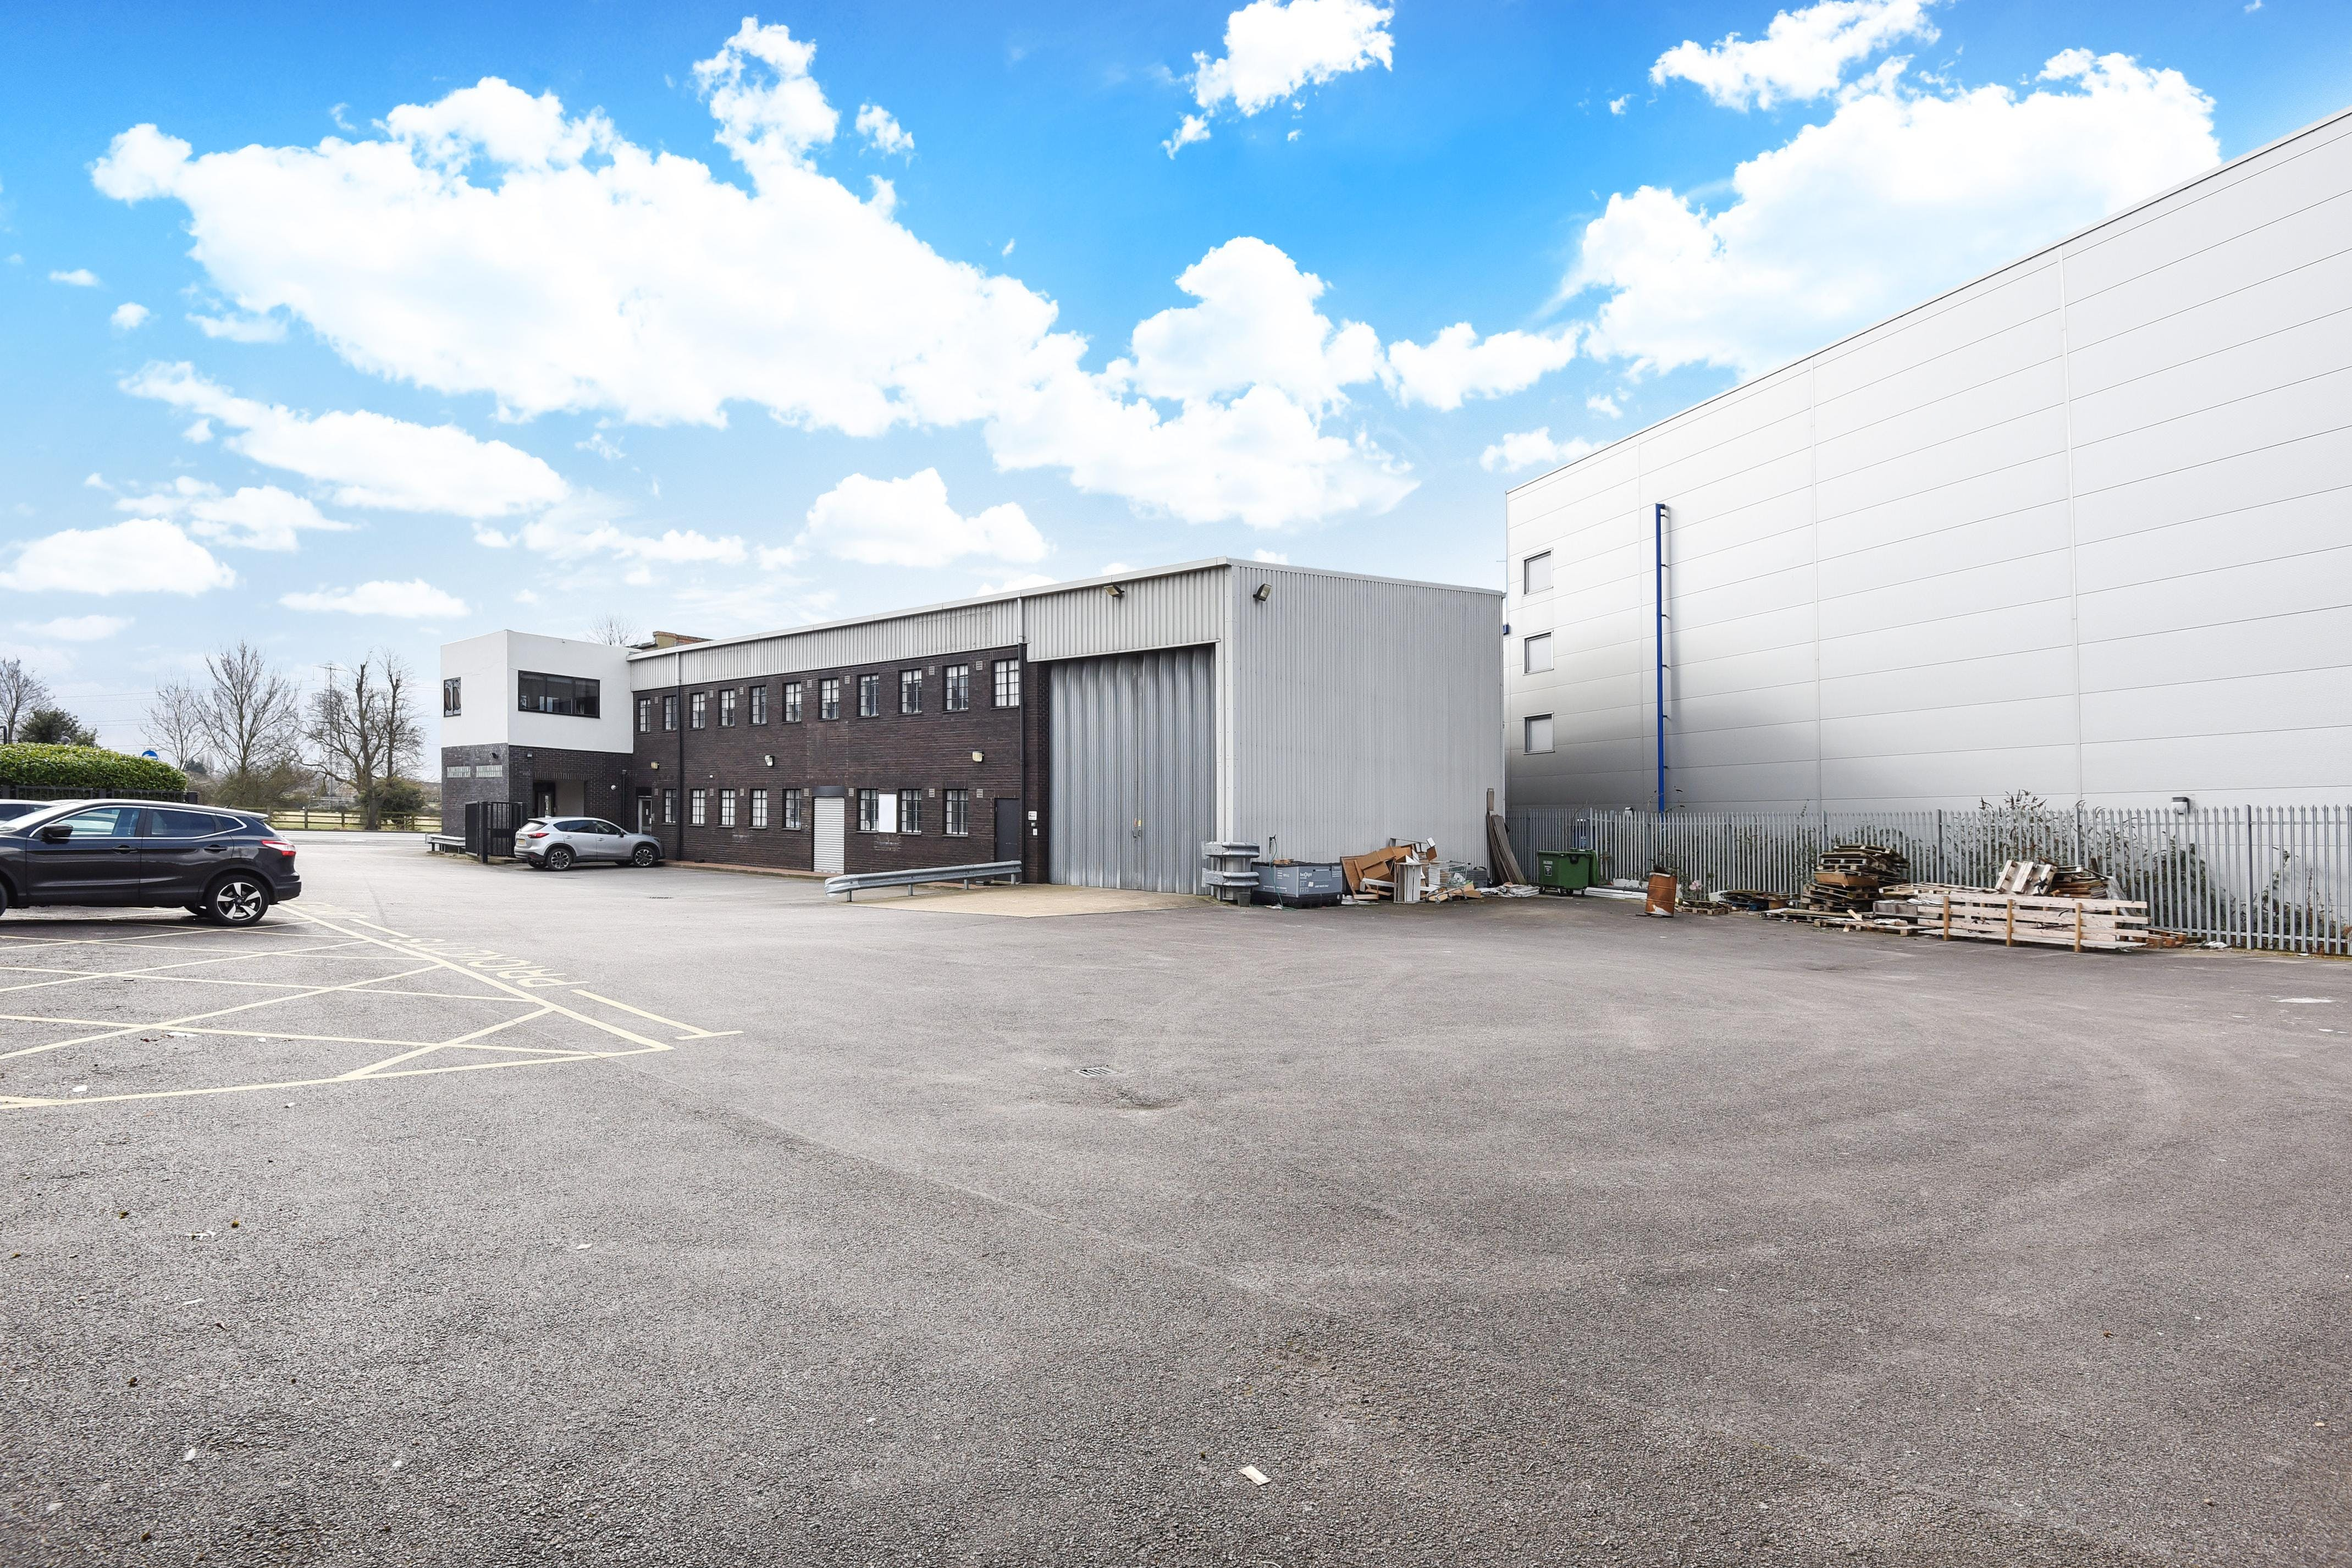 231 London Road, Staines Upon Thames, Industrial To Let - 248489 (8).JPG